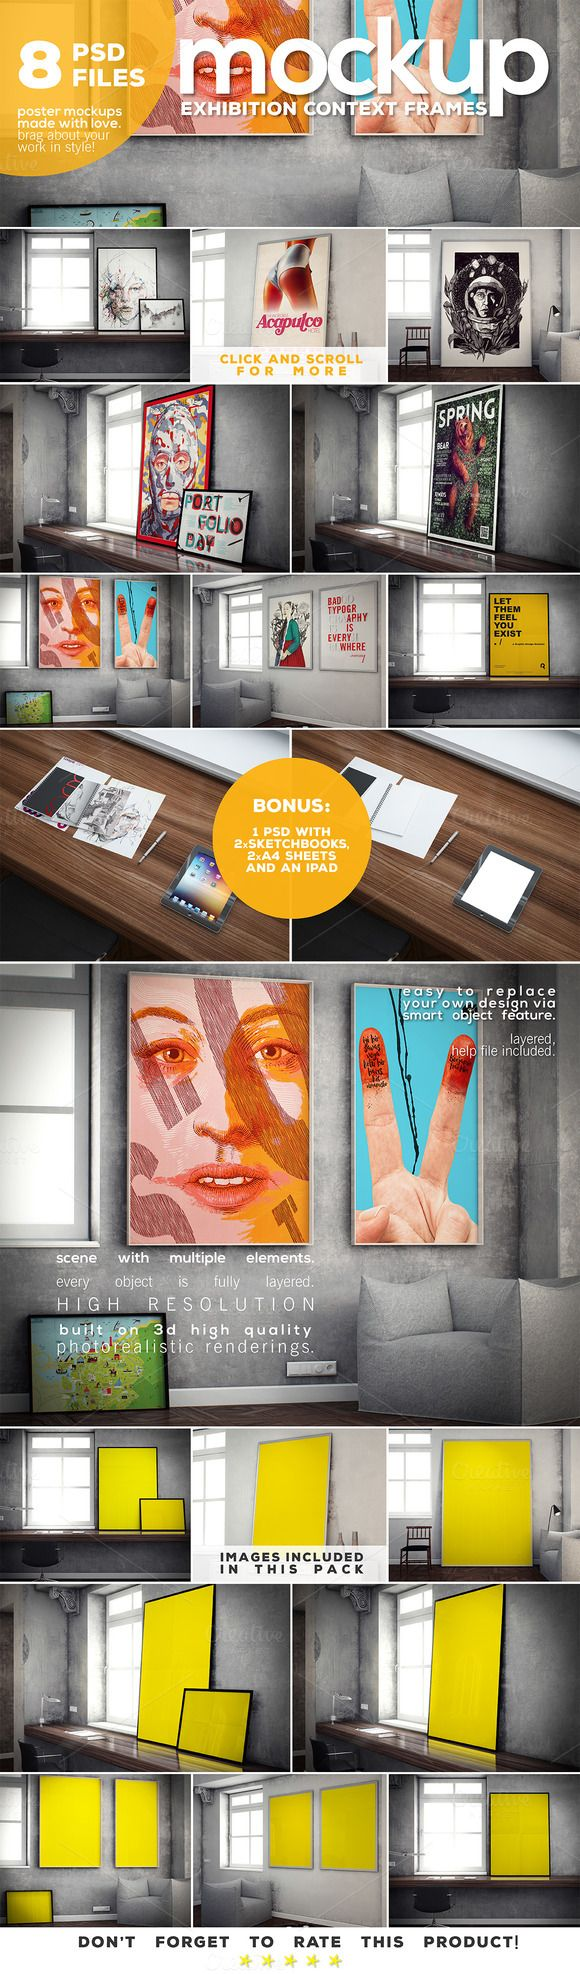 Poster Mockup vol.3 - Context Frames by DESIGNbook on Creative Market